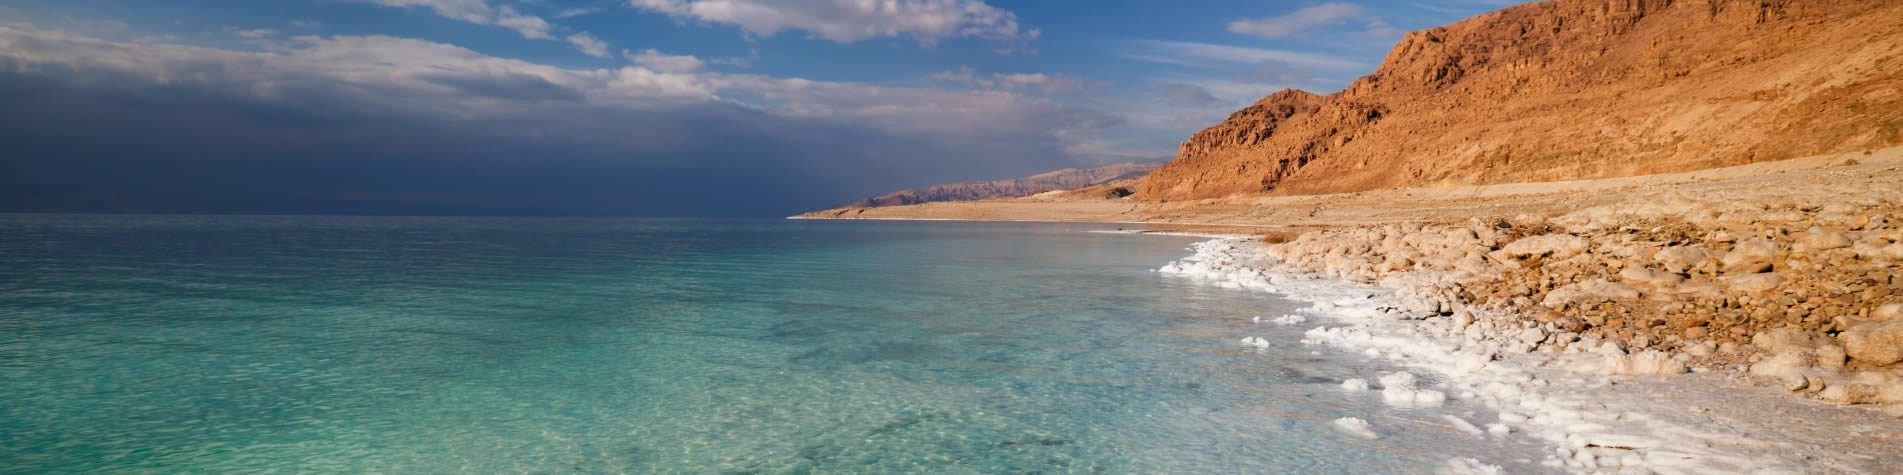 Dead Sea Holidays Specialists